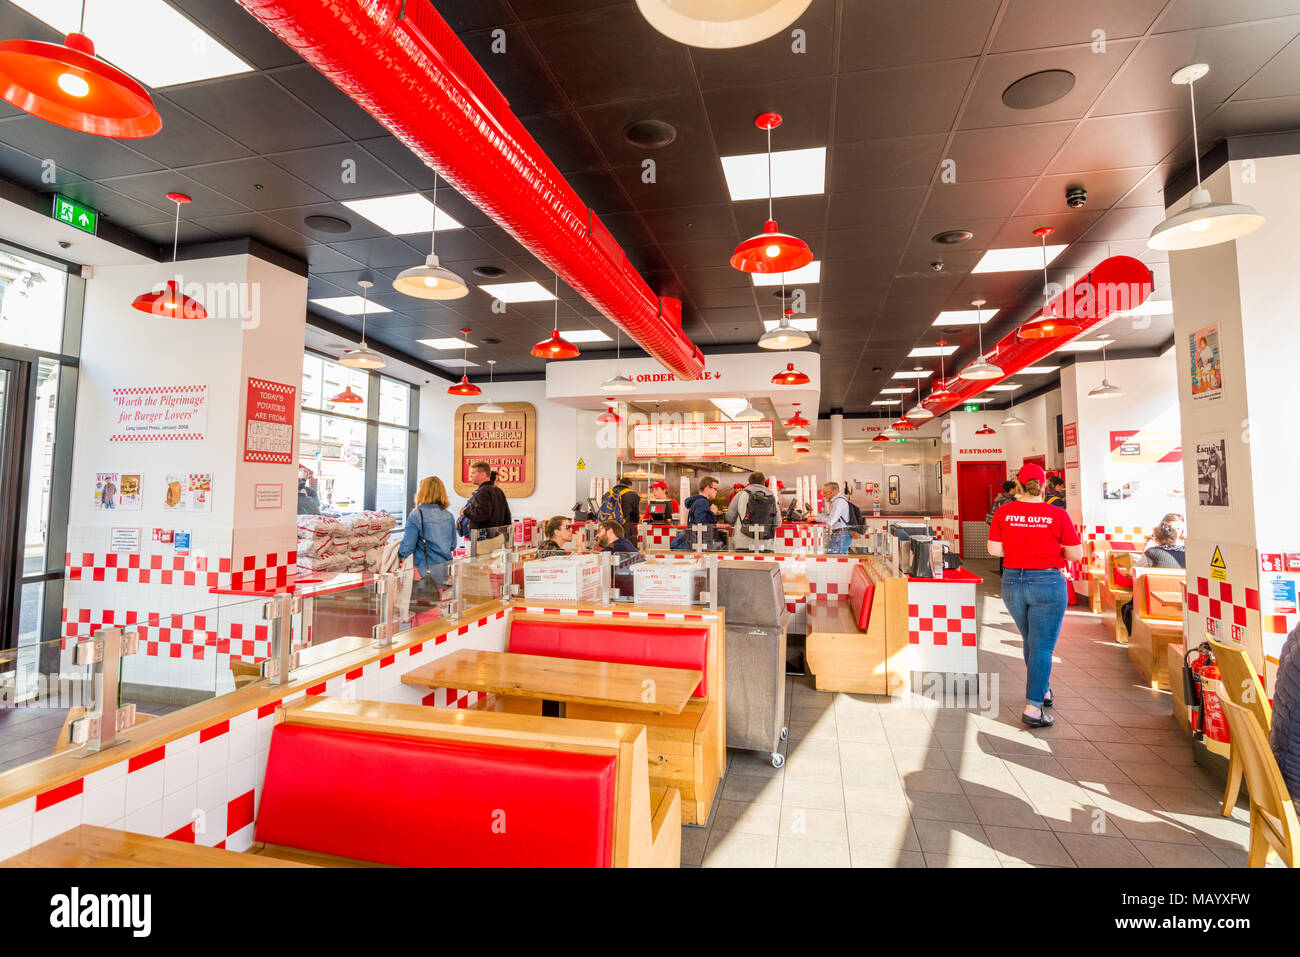 Le restaurant Five Guys, UK, Londres Photo Stock